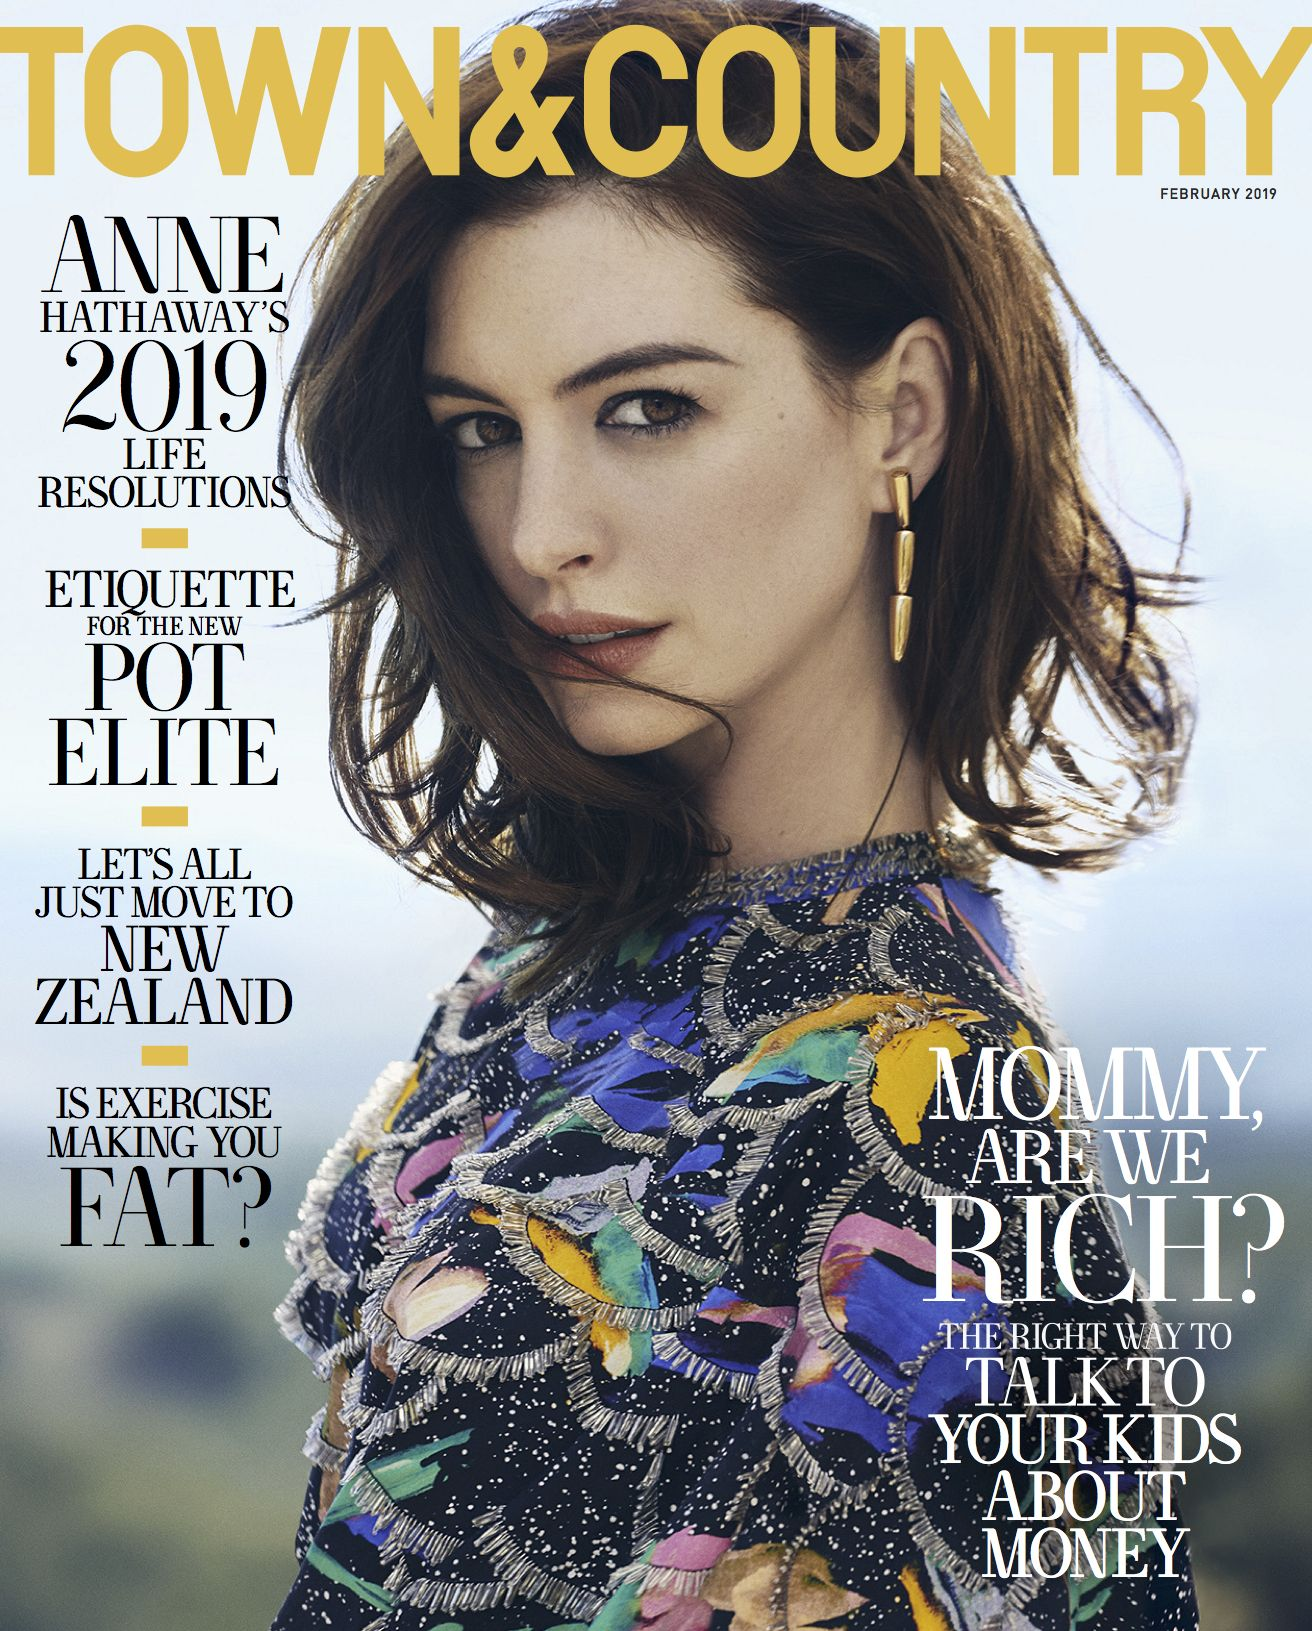 Anne Hathaway Town & Country